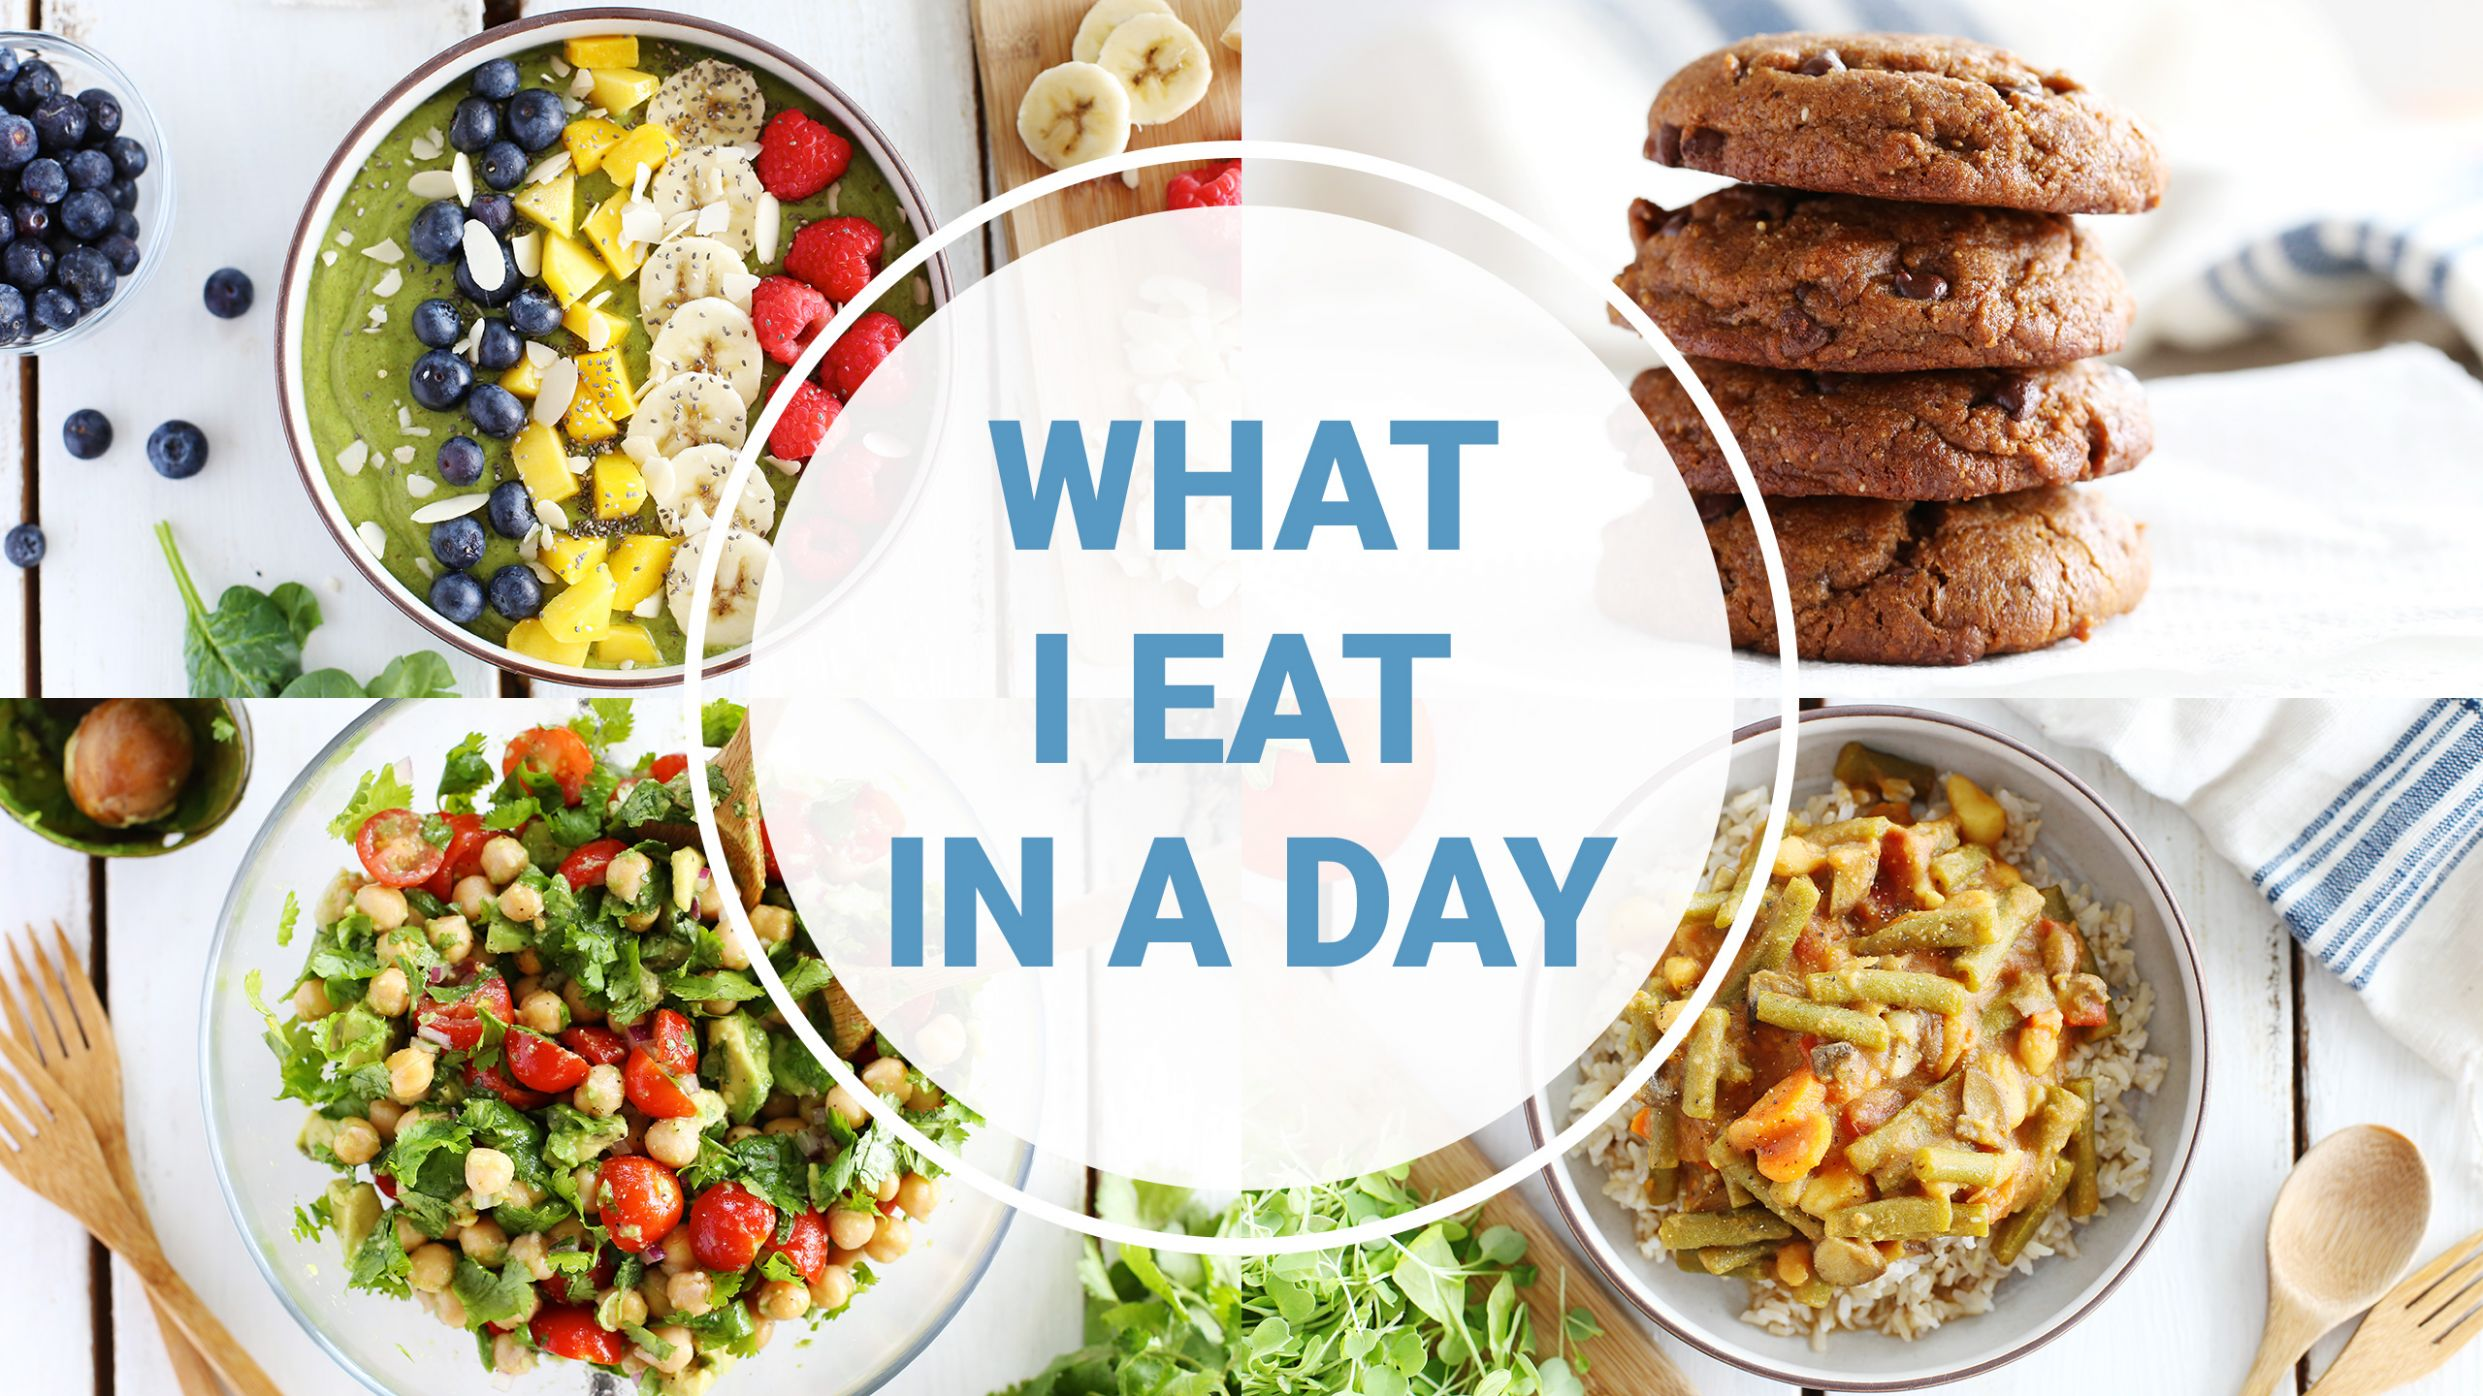 What I Eat In A Day | High Protein Vegan Recipes - Vegetable Recipes High In Protein